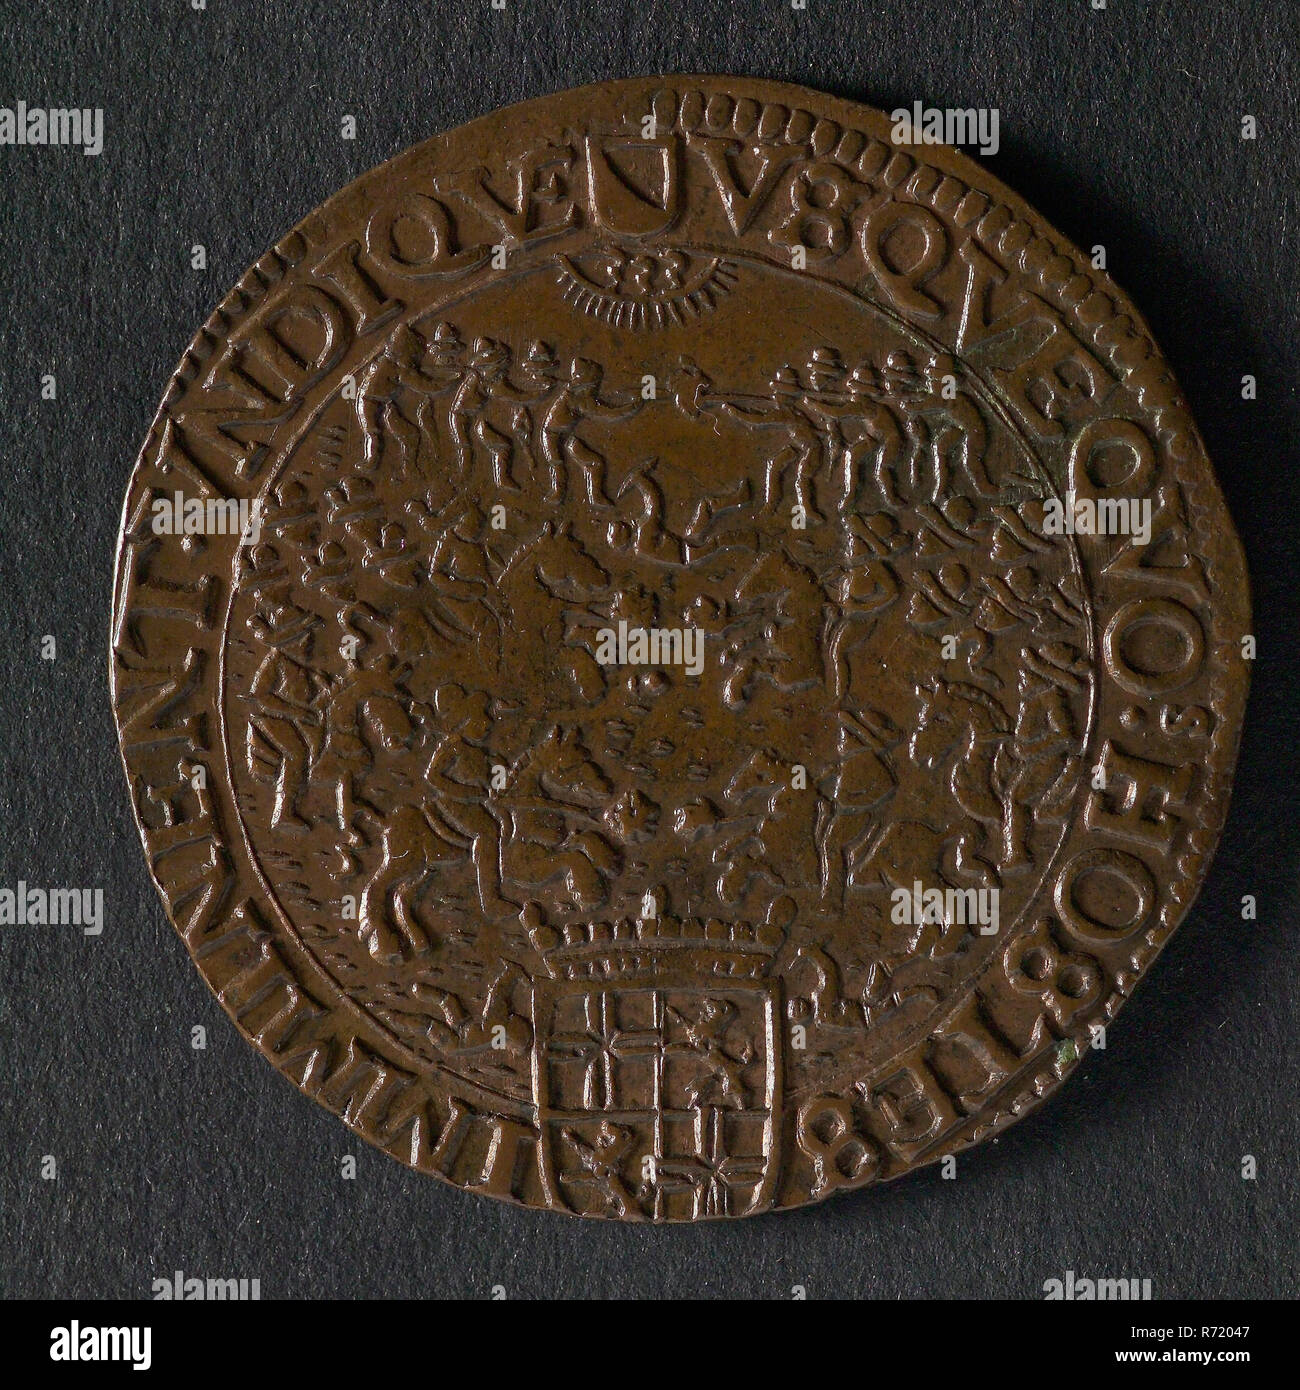 Medal on the revival after the defeats brought by the Dunkirk Kapers, jeton utility medal medal exchange buyer, fighting on horseback and on foot; above it name Jehovah in Hebrew letters in the clouds; lower crowned coat of arms of the States of Utrecht regulation: VSQVEQVO? HOSTES - IMMINENT. VNDIQVE (weapon) (the longer, the enemies are pressing from all sides) Dunkirk Utrecht - Stock Image